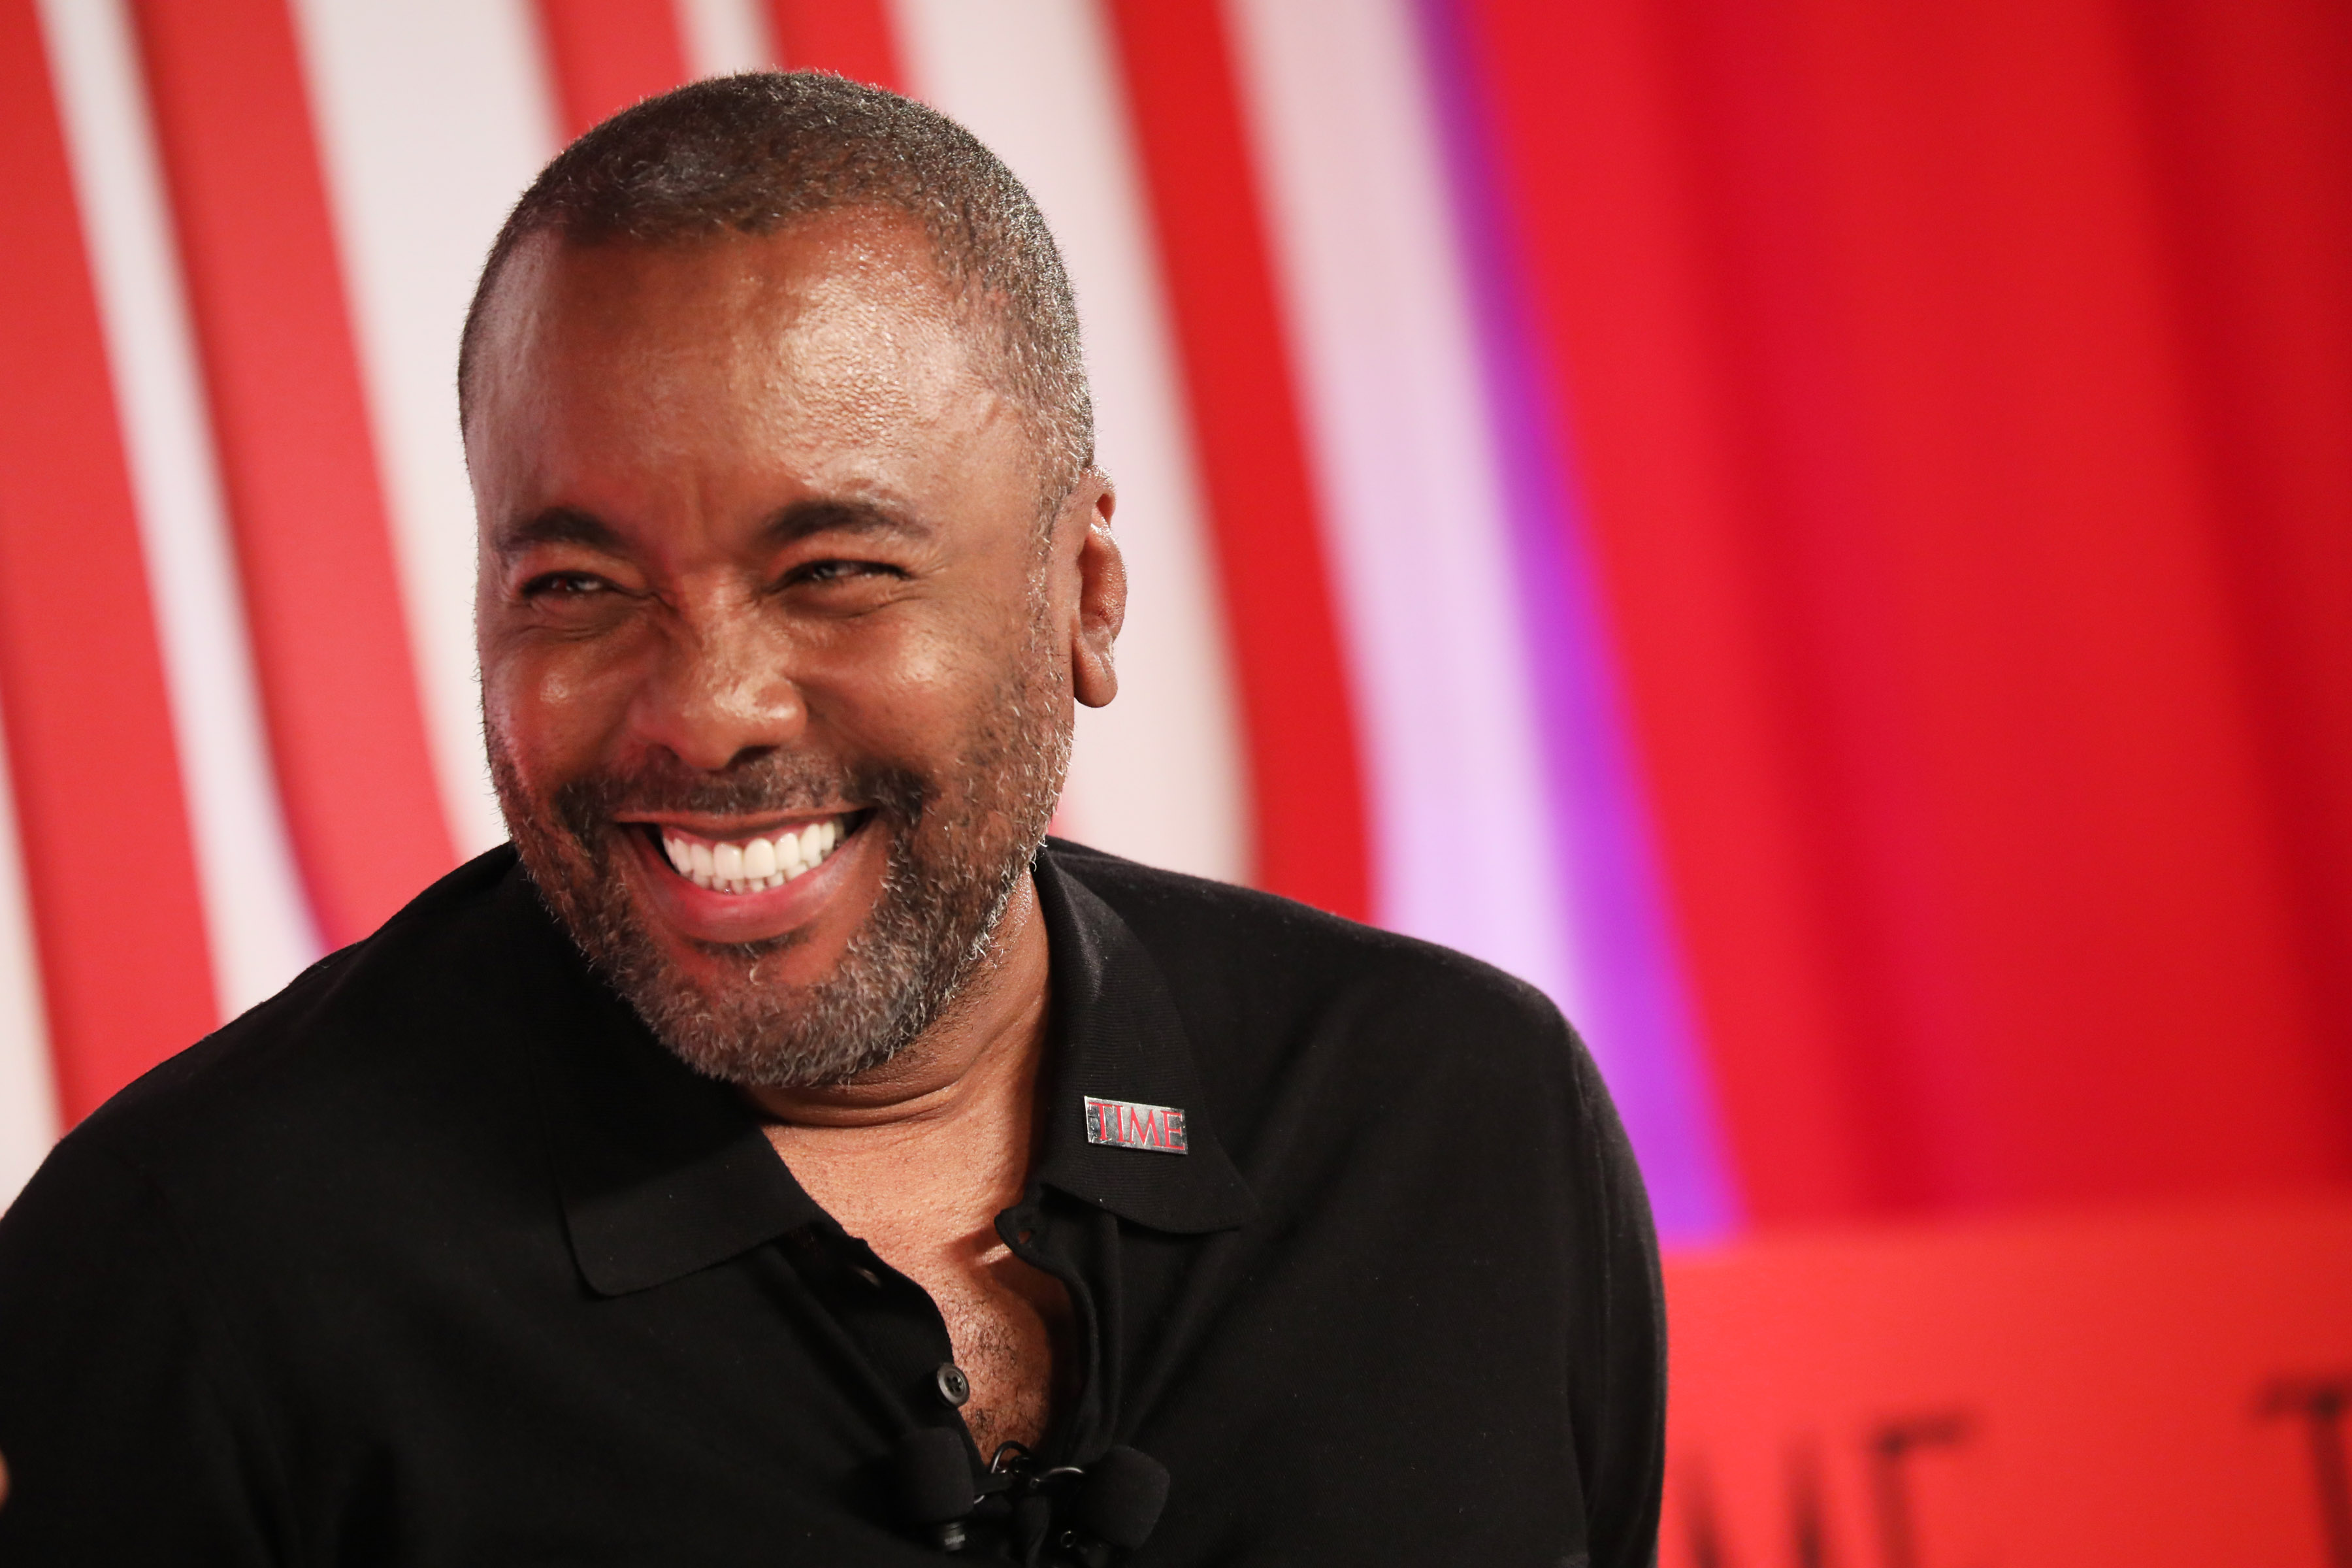 Lee Daniels to briefly resurrect his cancelled 'Star' drama series